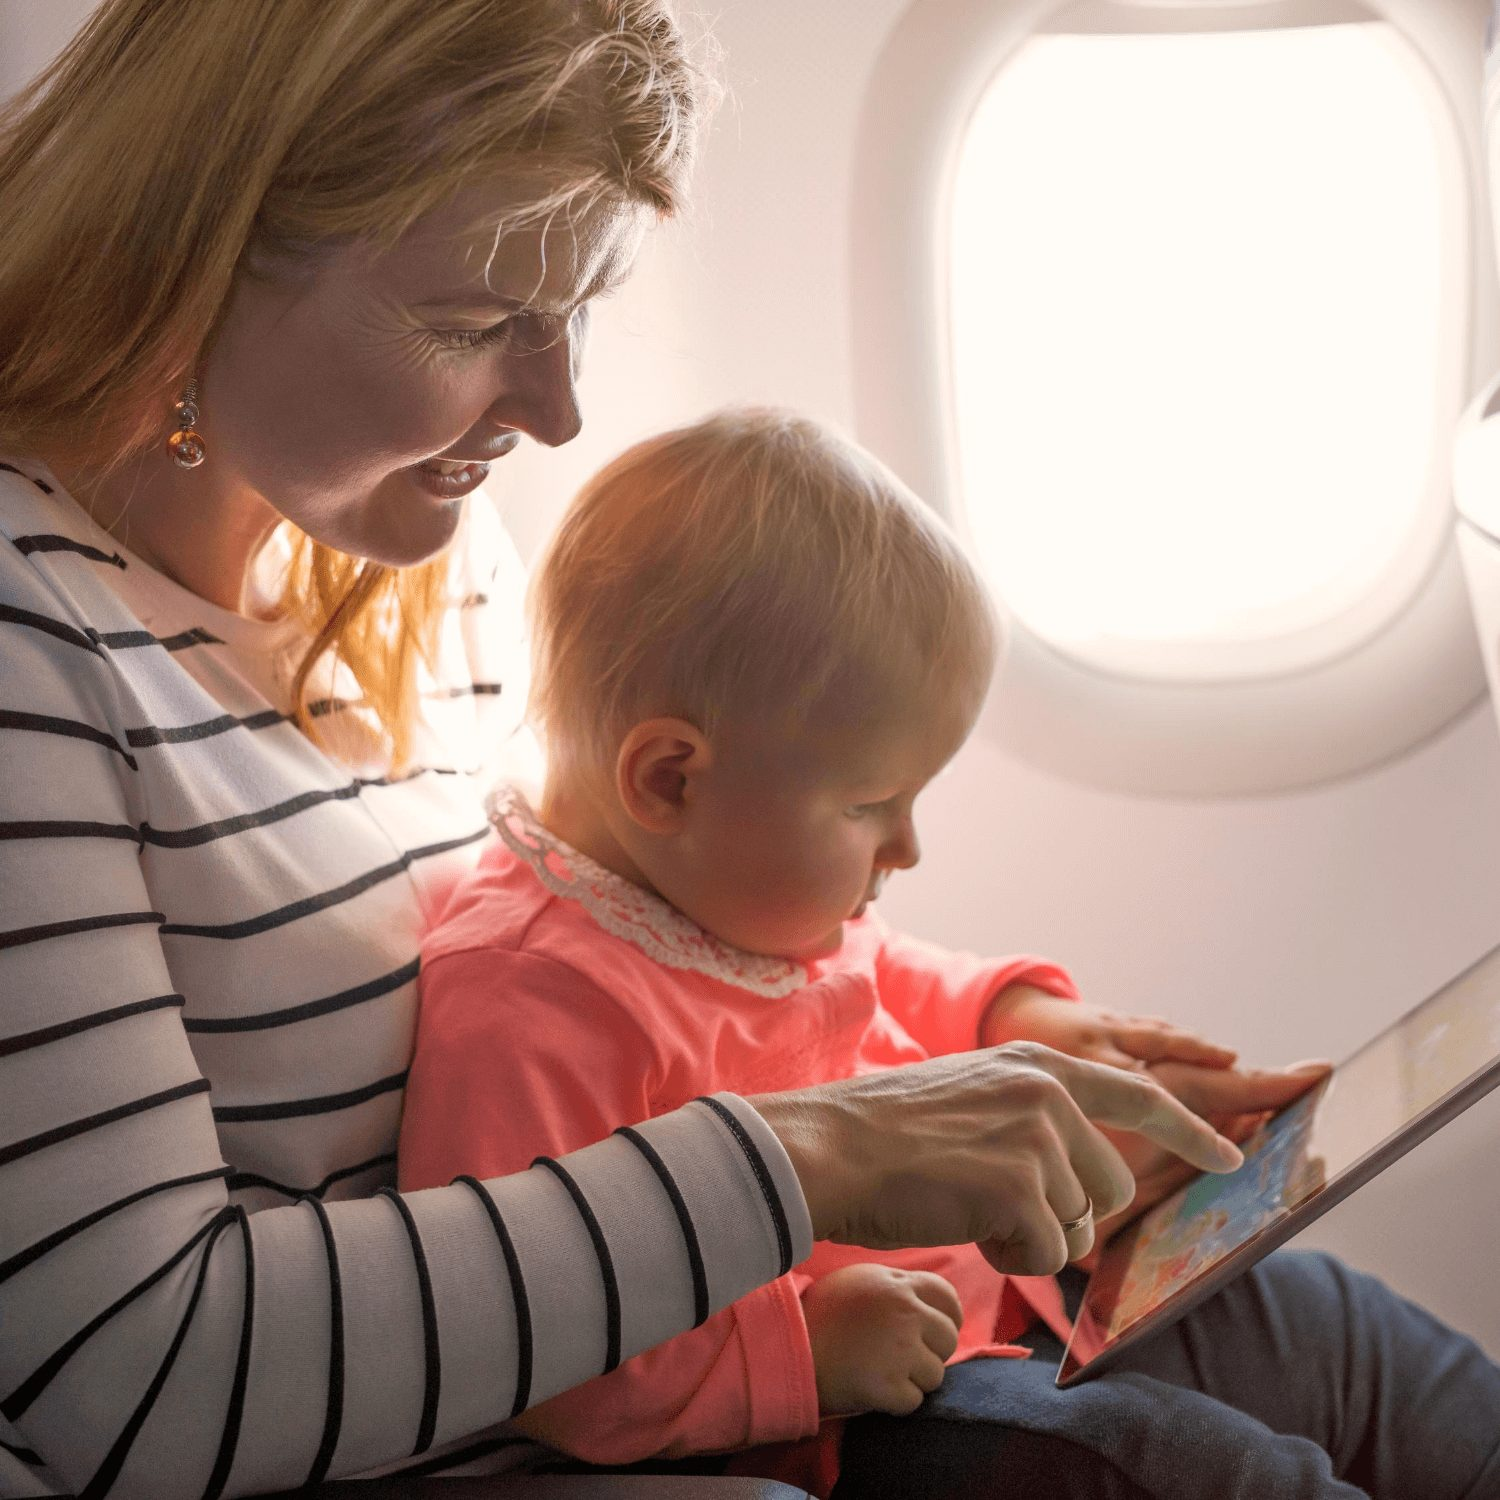 Gatwick Airport Children's Facilities - infant on plane